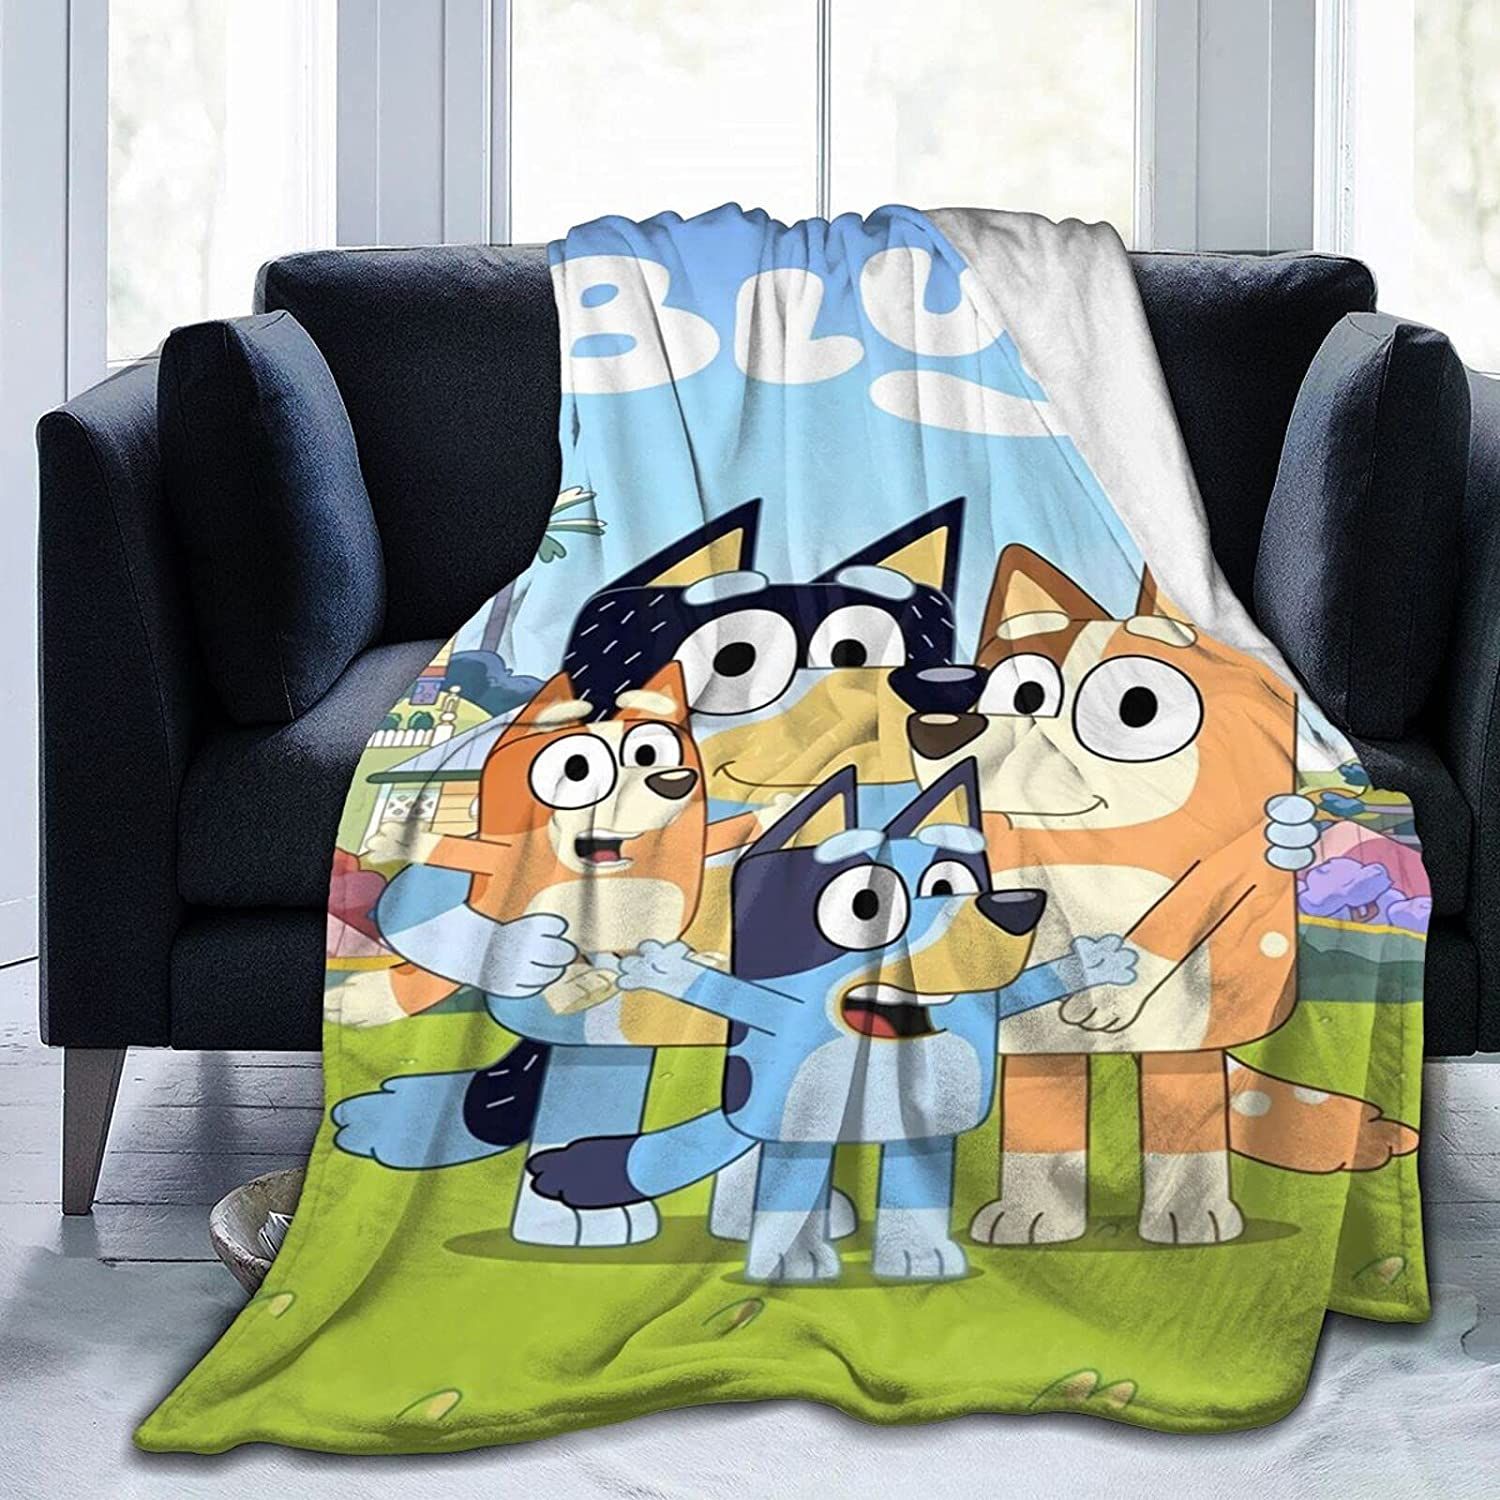 2021 Bluey Blanket Soft Inventory cleanup selling sale Cozy Blankets Flannel Throw Rapid rise for